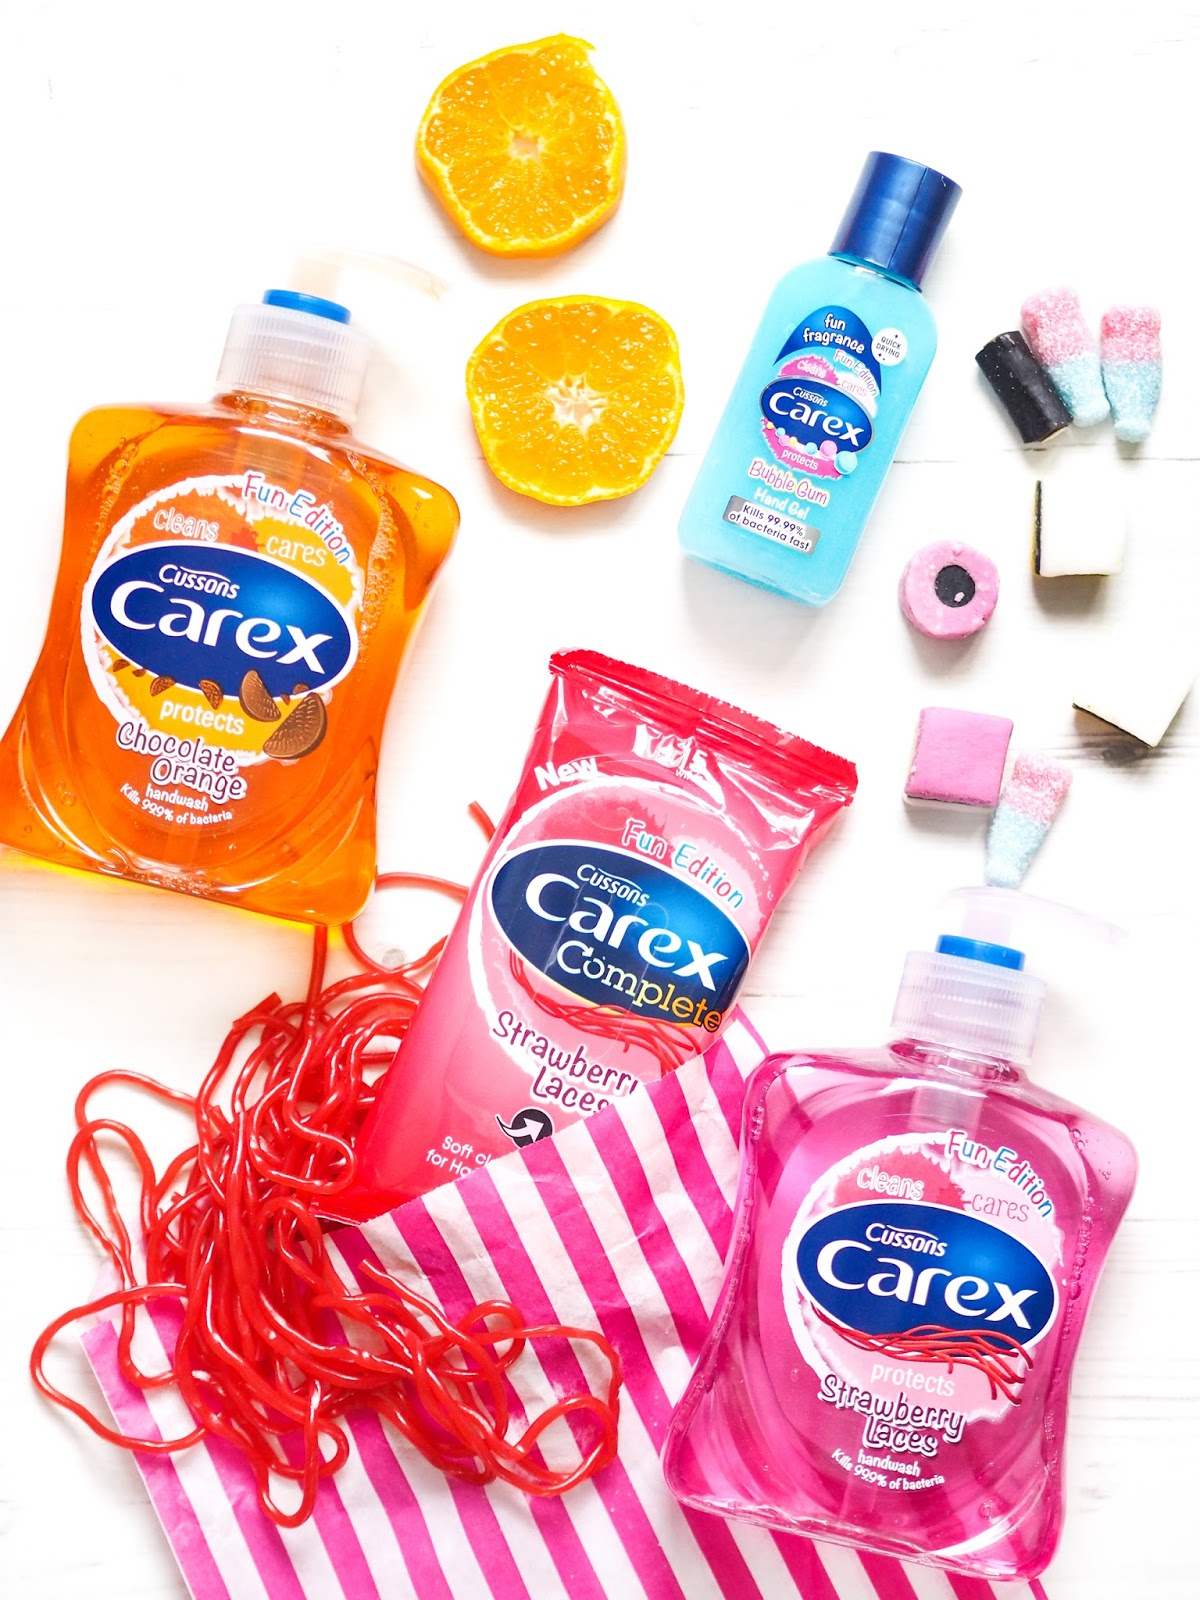 Carex Fun Editions Review